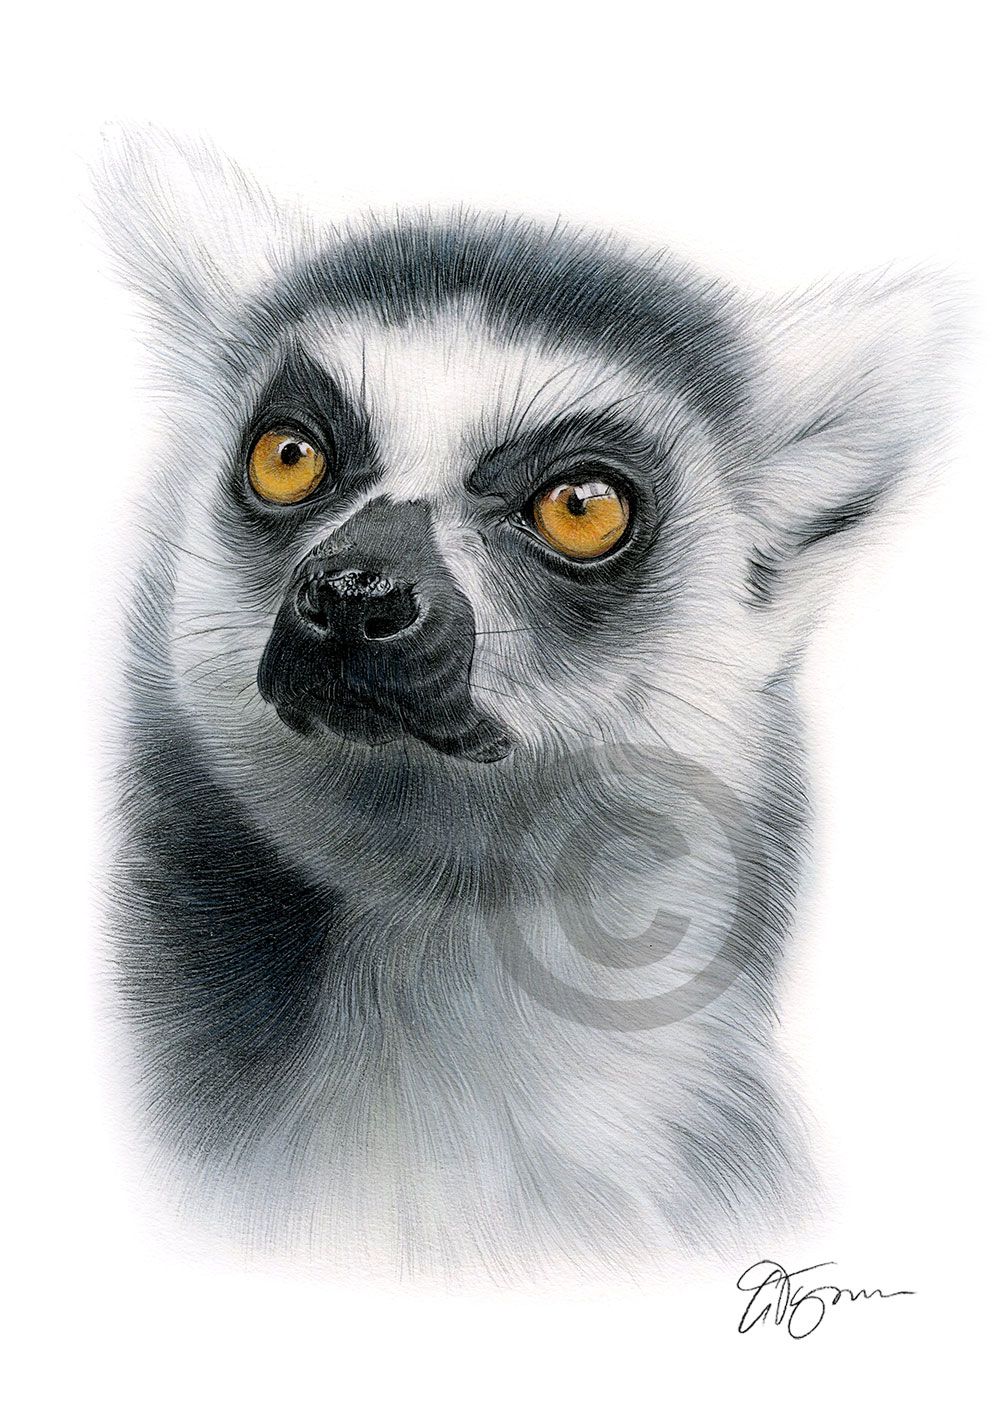 Ring-Tailed Lemur colour pencil drawing by artist Gary Tymon